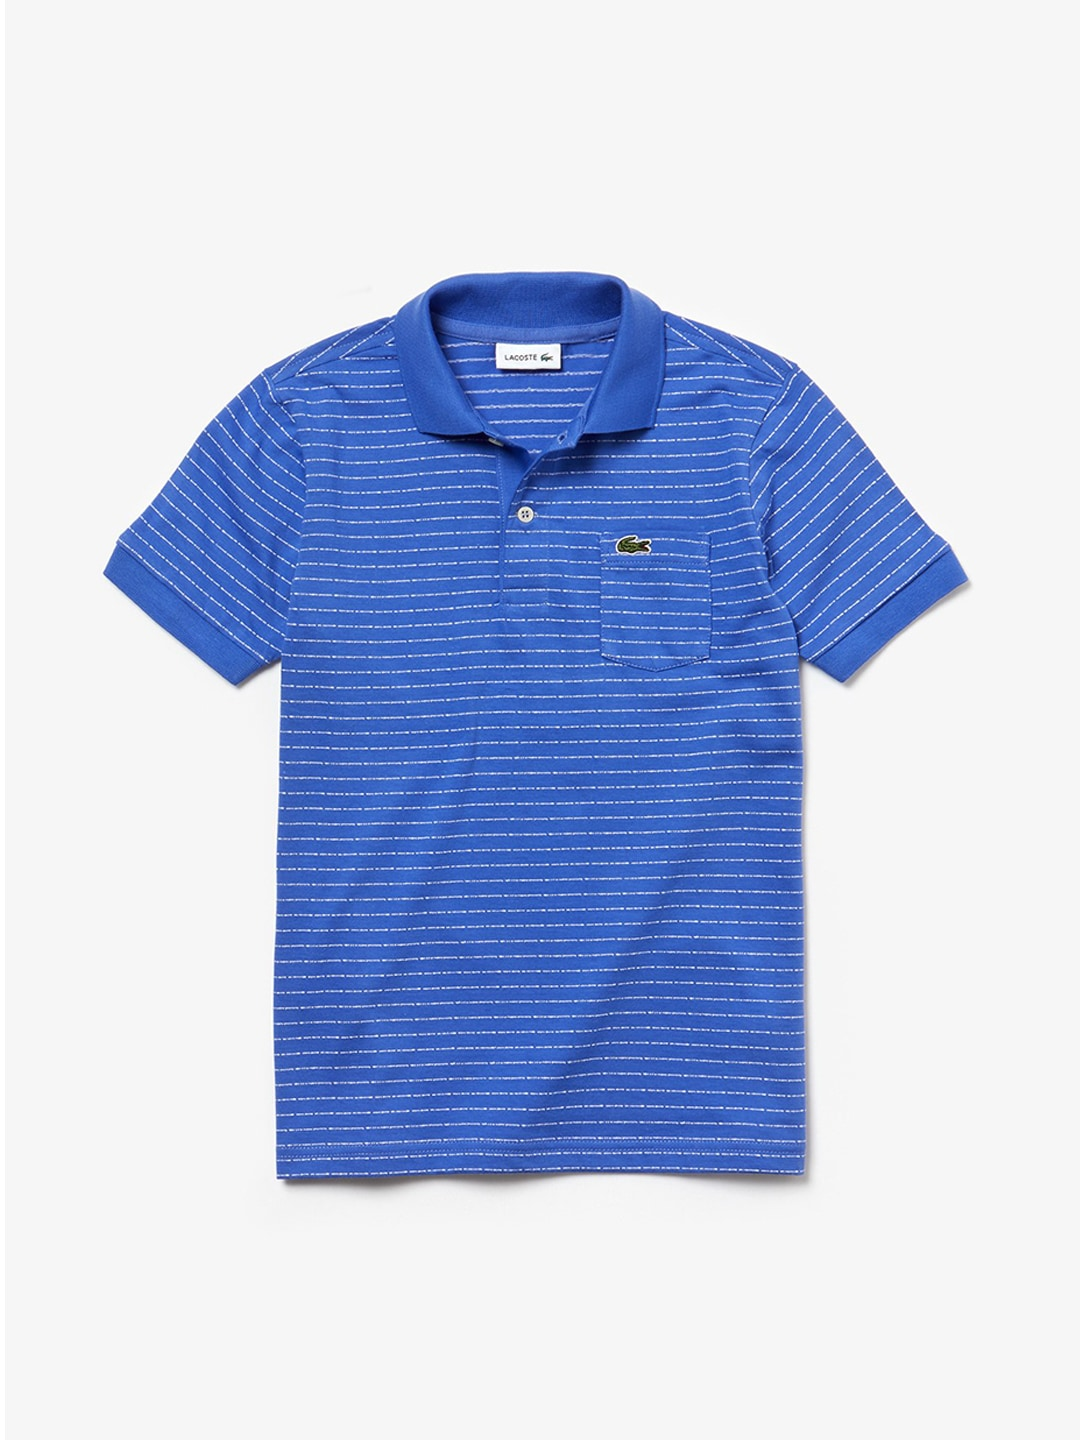 7bdd3f34c37f Lacoste - Buy Clothing   Accessories from Lacoste Store